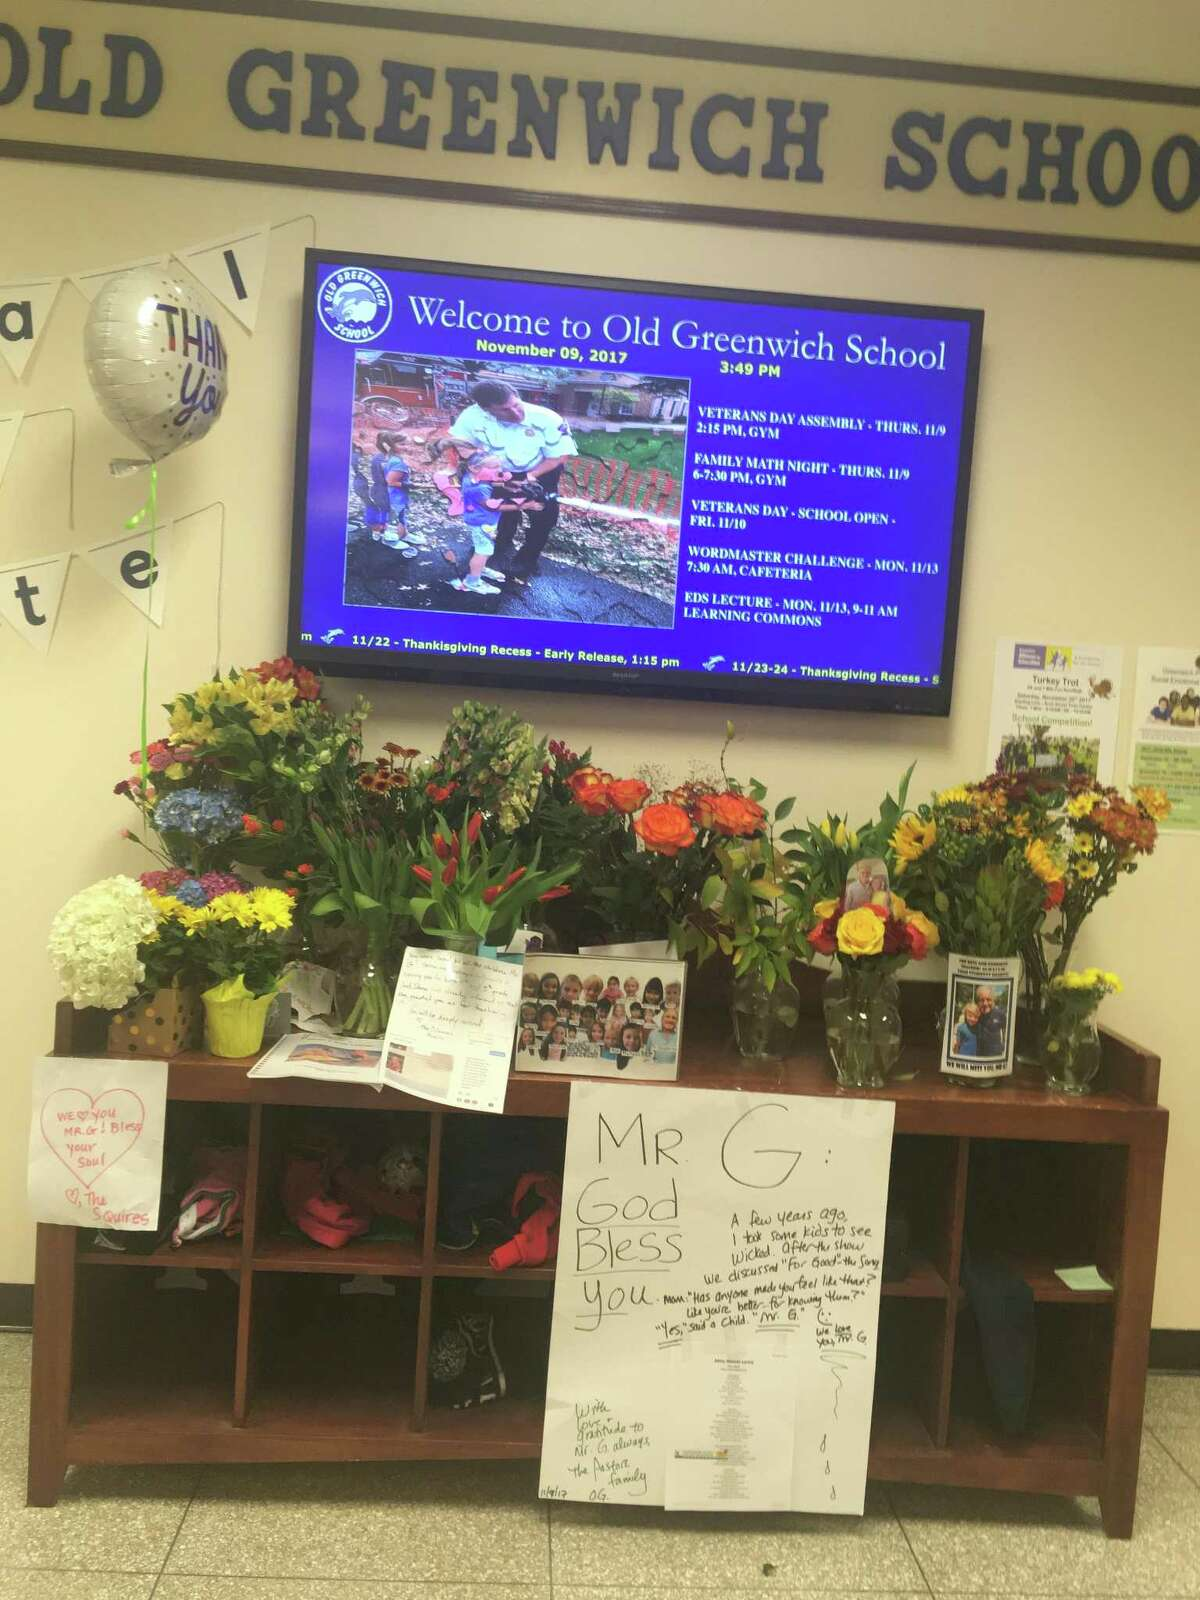 A memorial made of flowers and cards has been erected at Old Greenwich School in honor of a teacher there, Frank Gasparino, who died Wednesday.